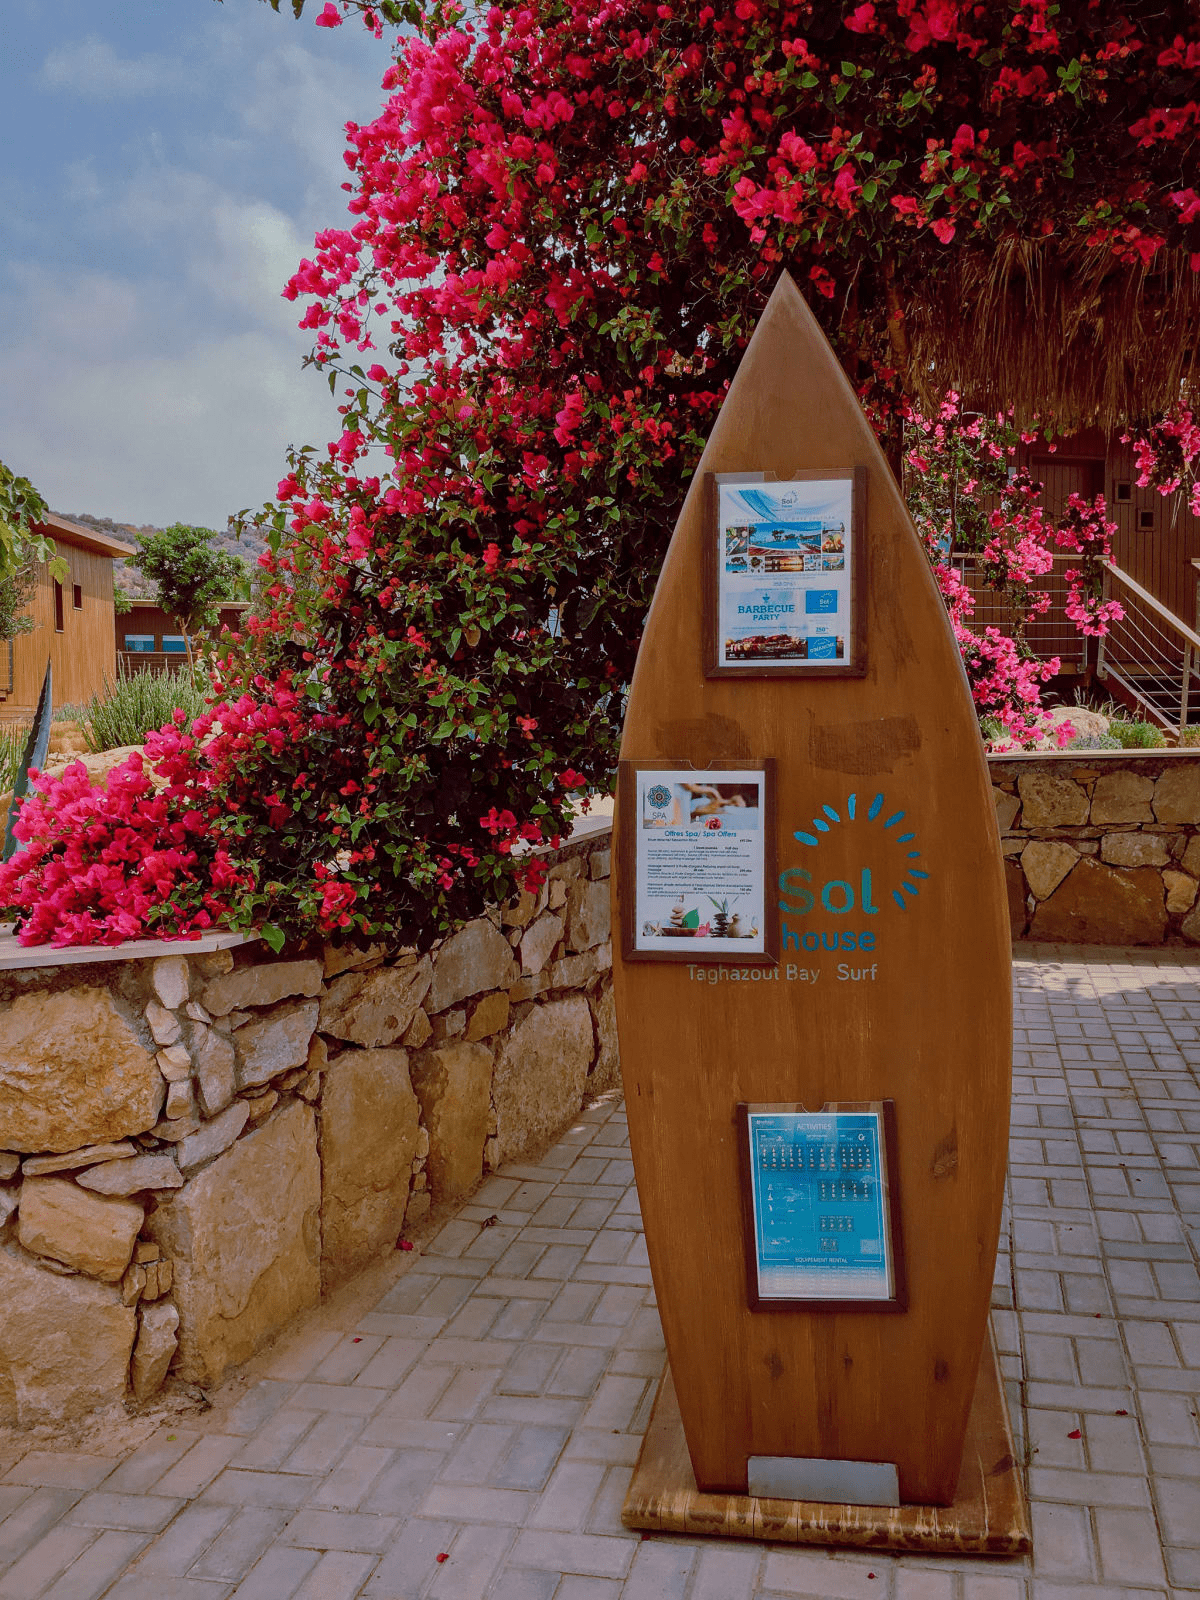 sol house taghazout bay resort surf board display with an activities and events calendar surrounded by pink flowers, stone, and bungalows